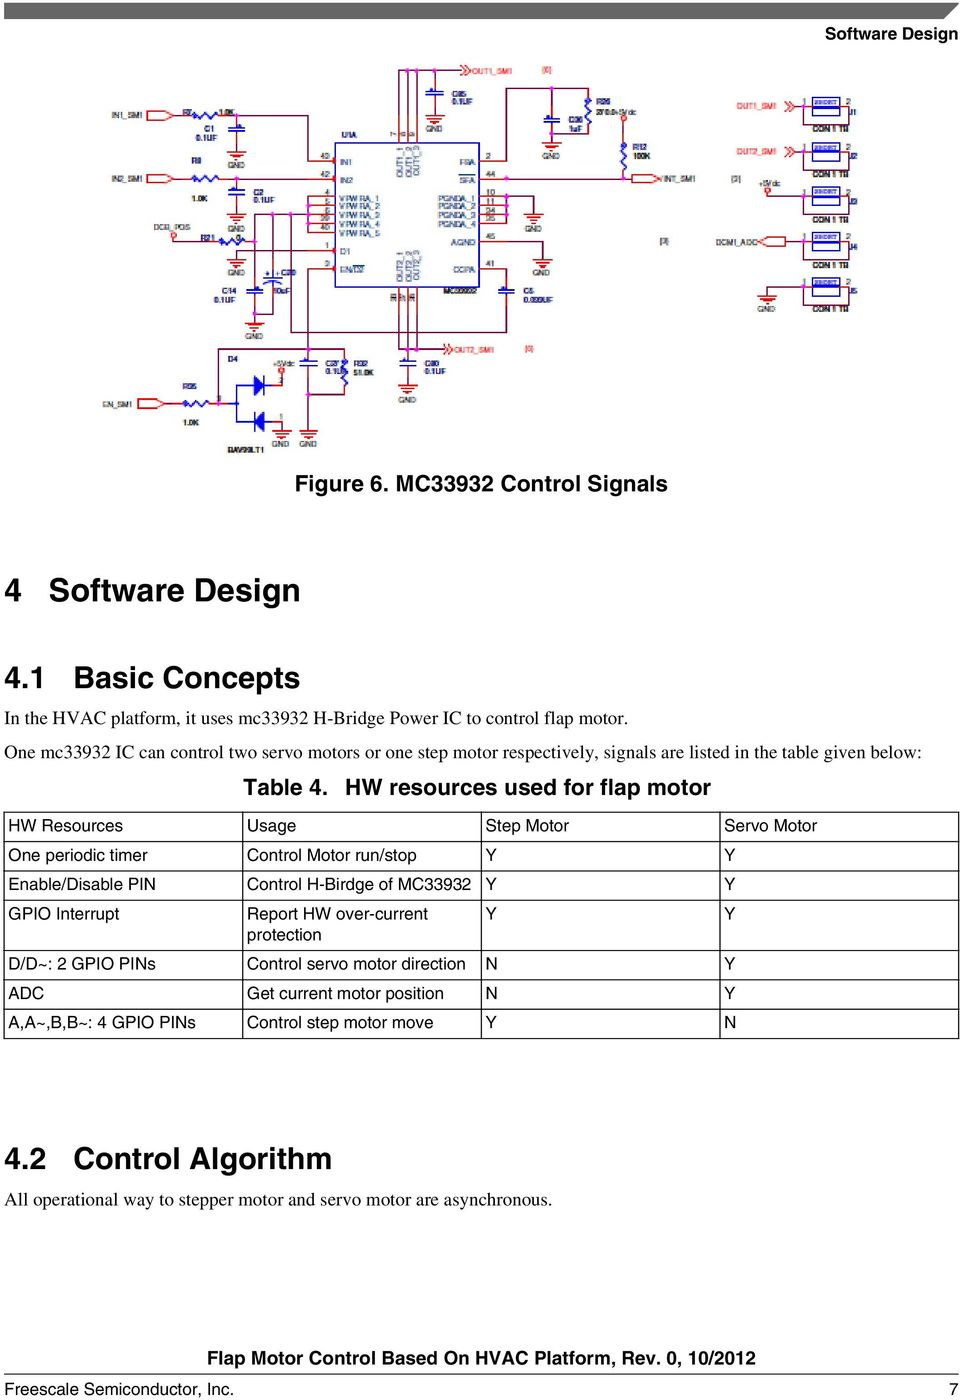 HW resources used for flap motor HW Resources Usage Step Motor Servo Motor One periodic timer Control Motor run/stop Y Y Enable/Disable PIN Control H-Birdge of MC33932 Y Y GPIO Interrupt Report